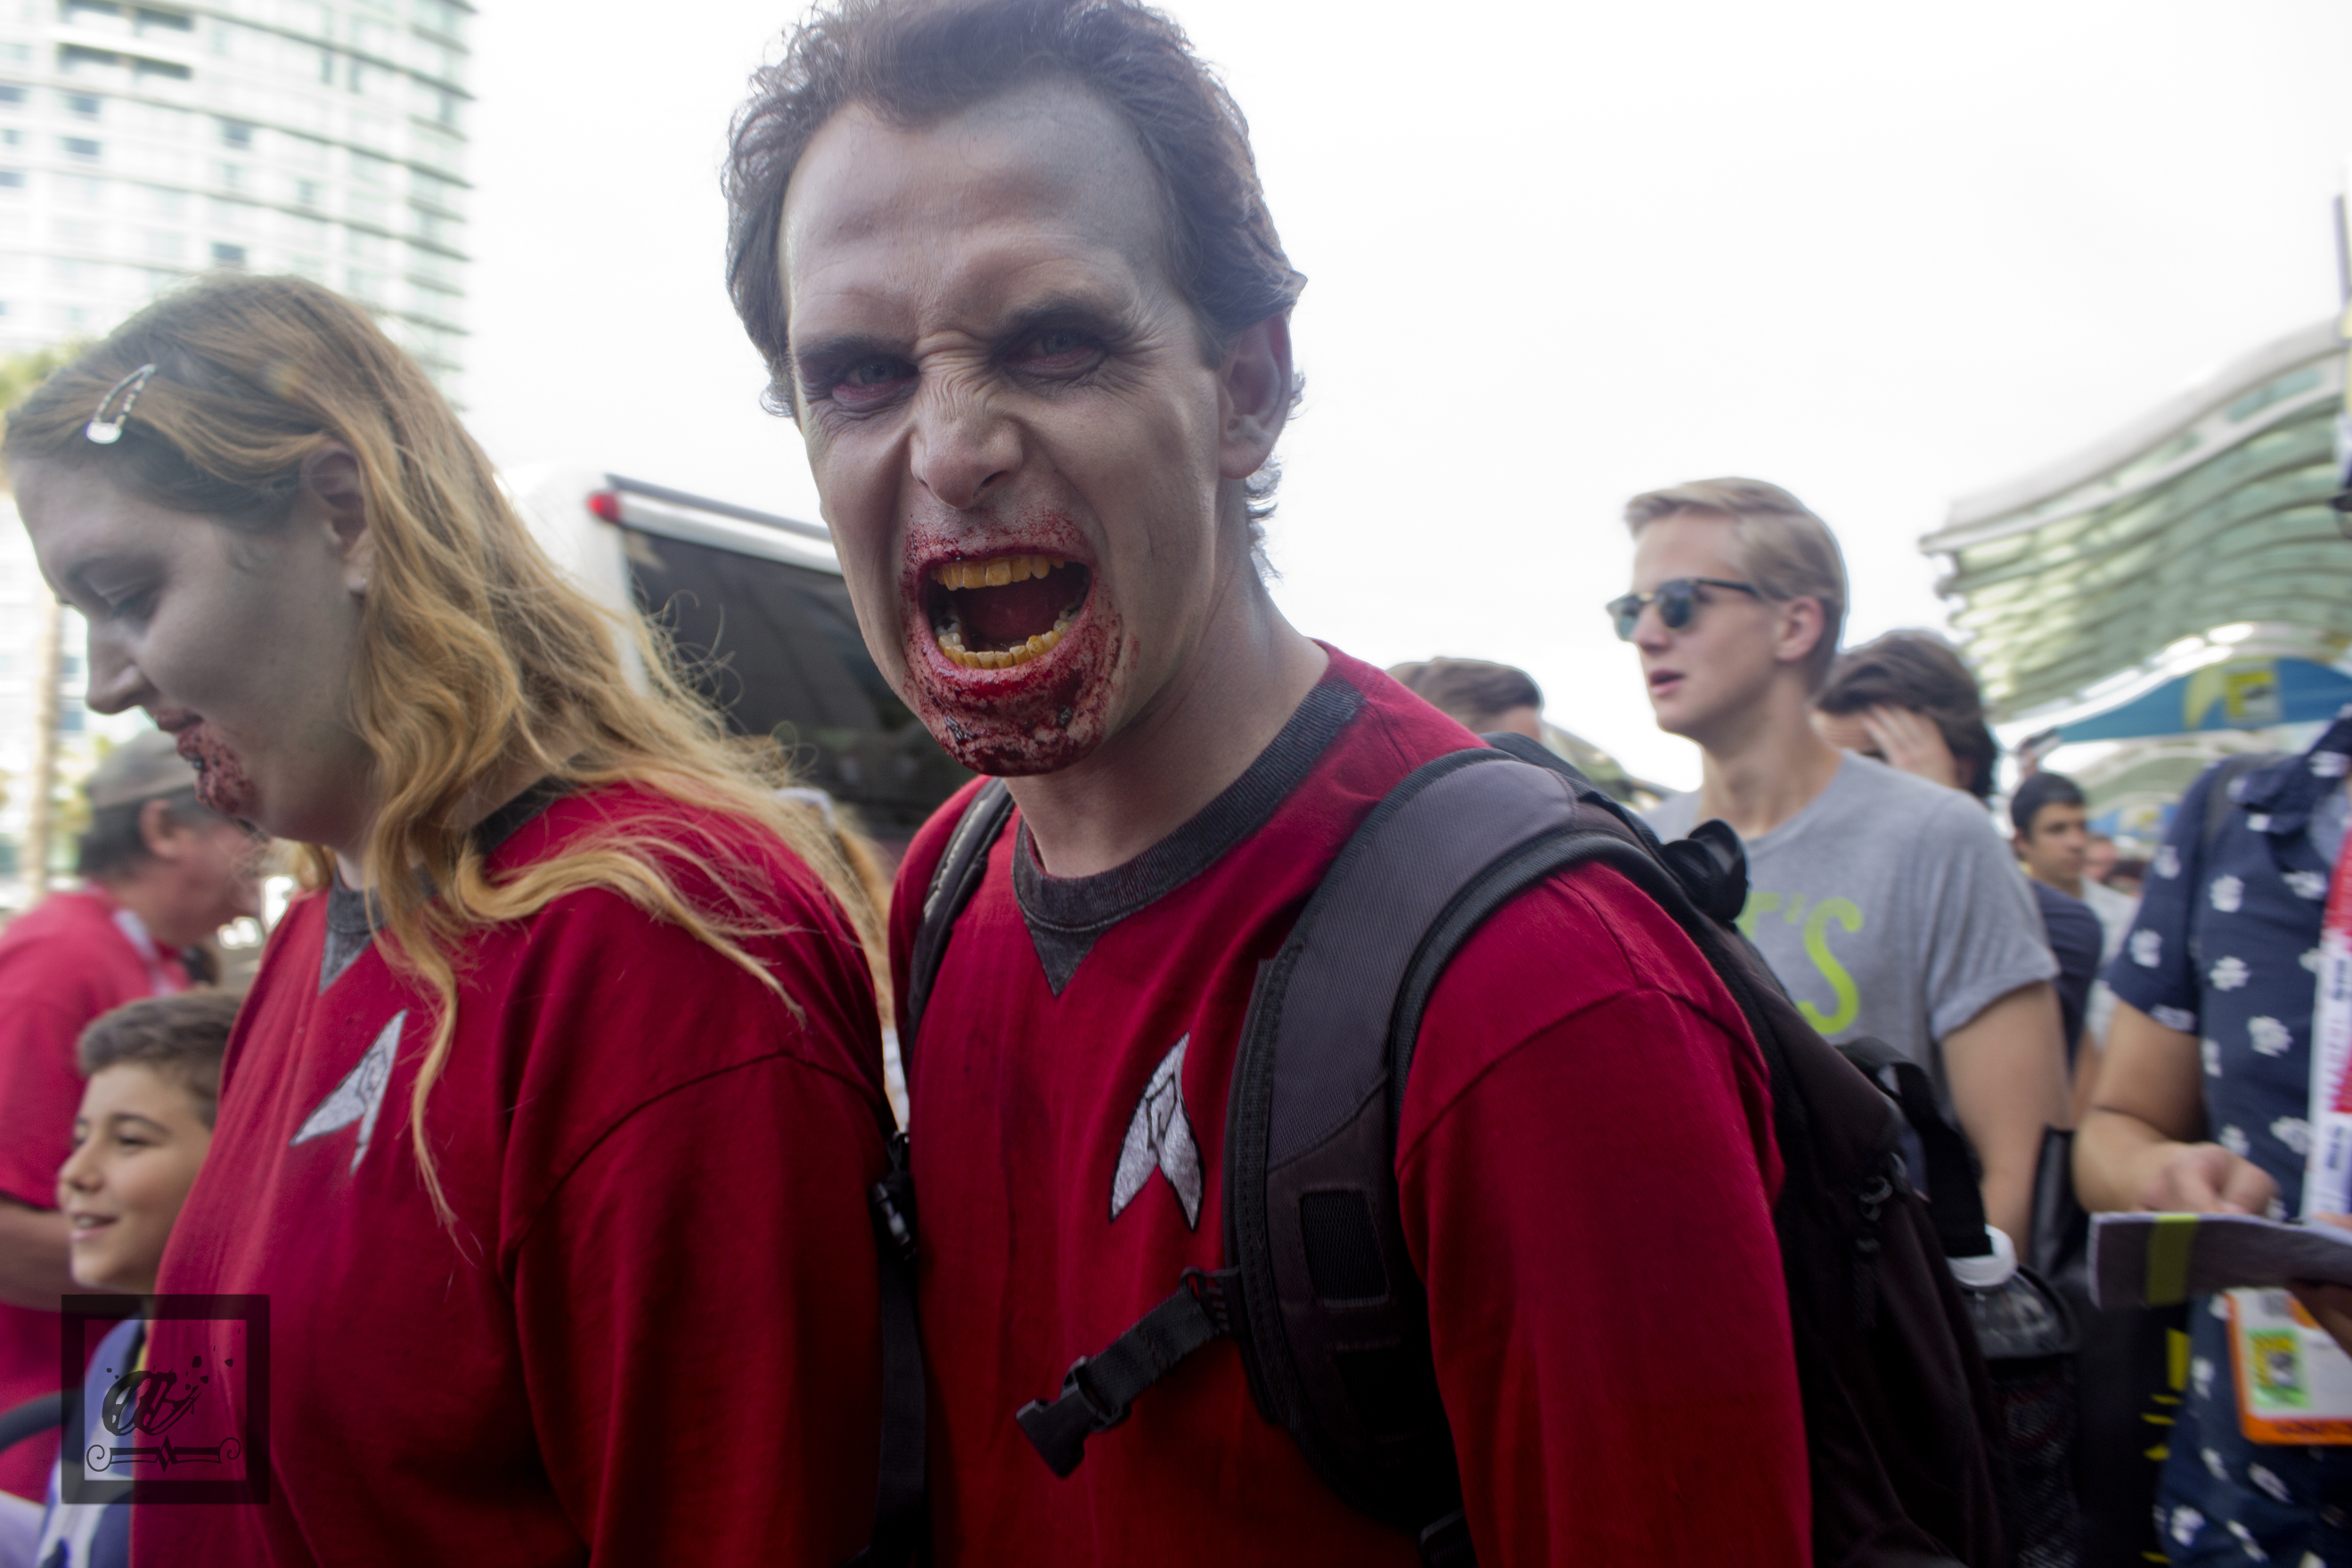 SDCC 2015 Red Shirt Zombie Cosplay